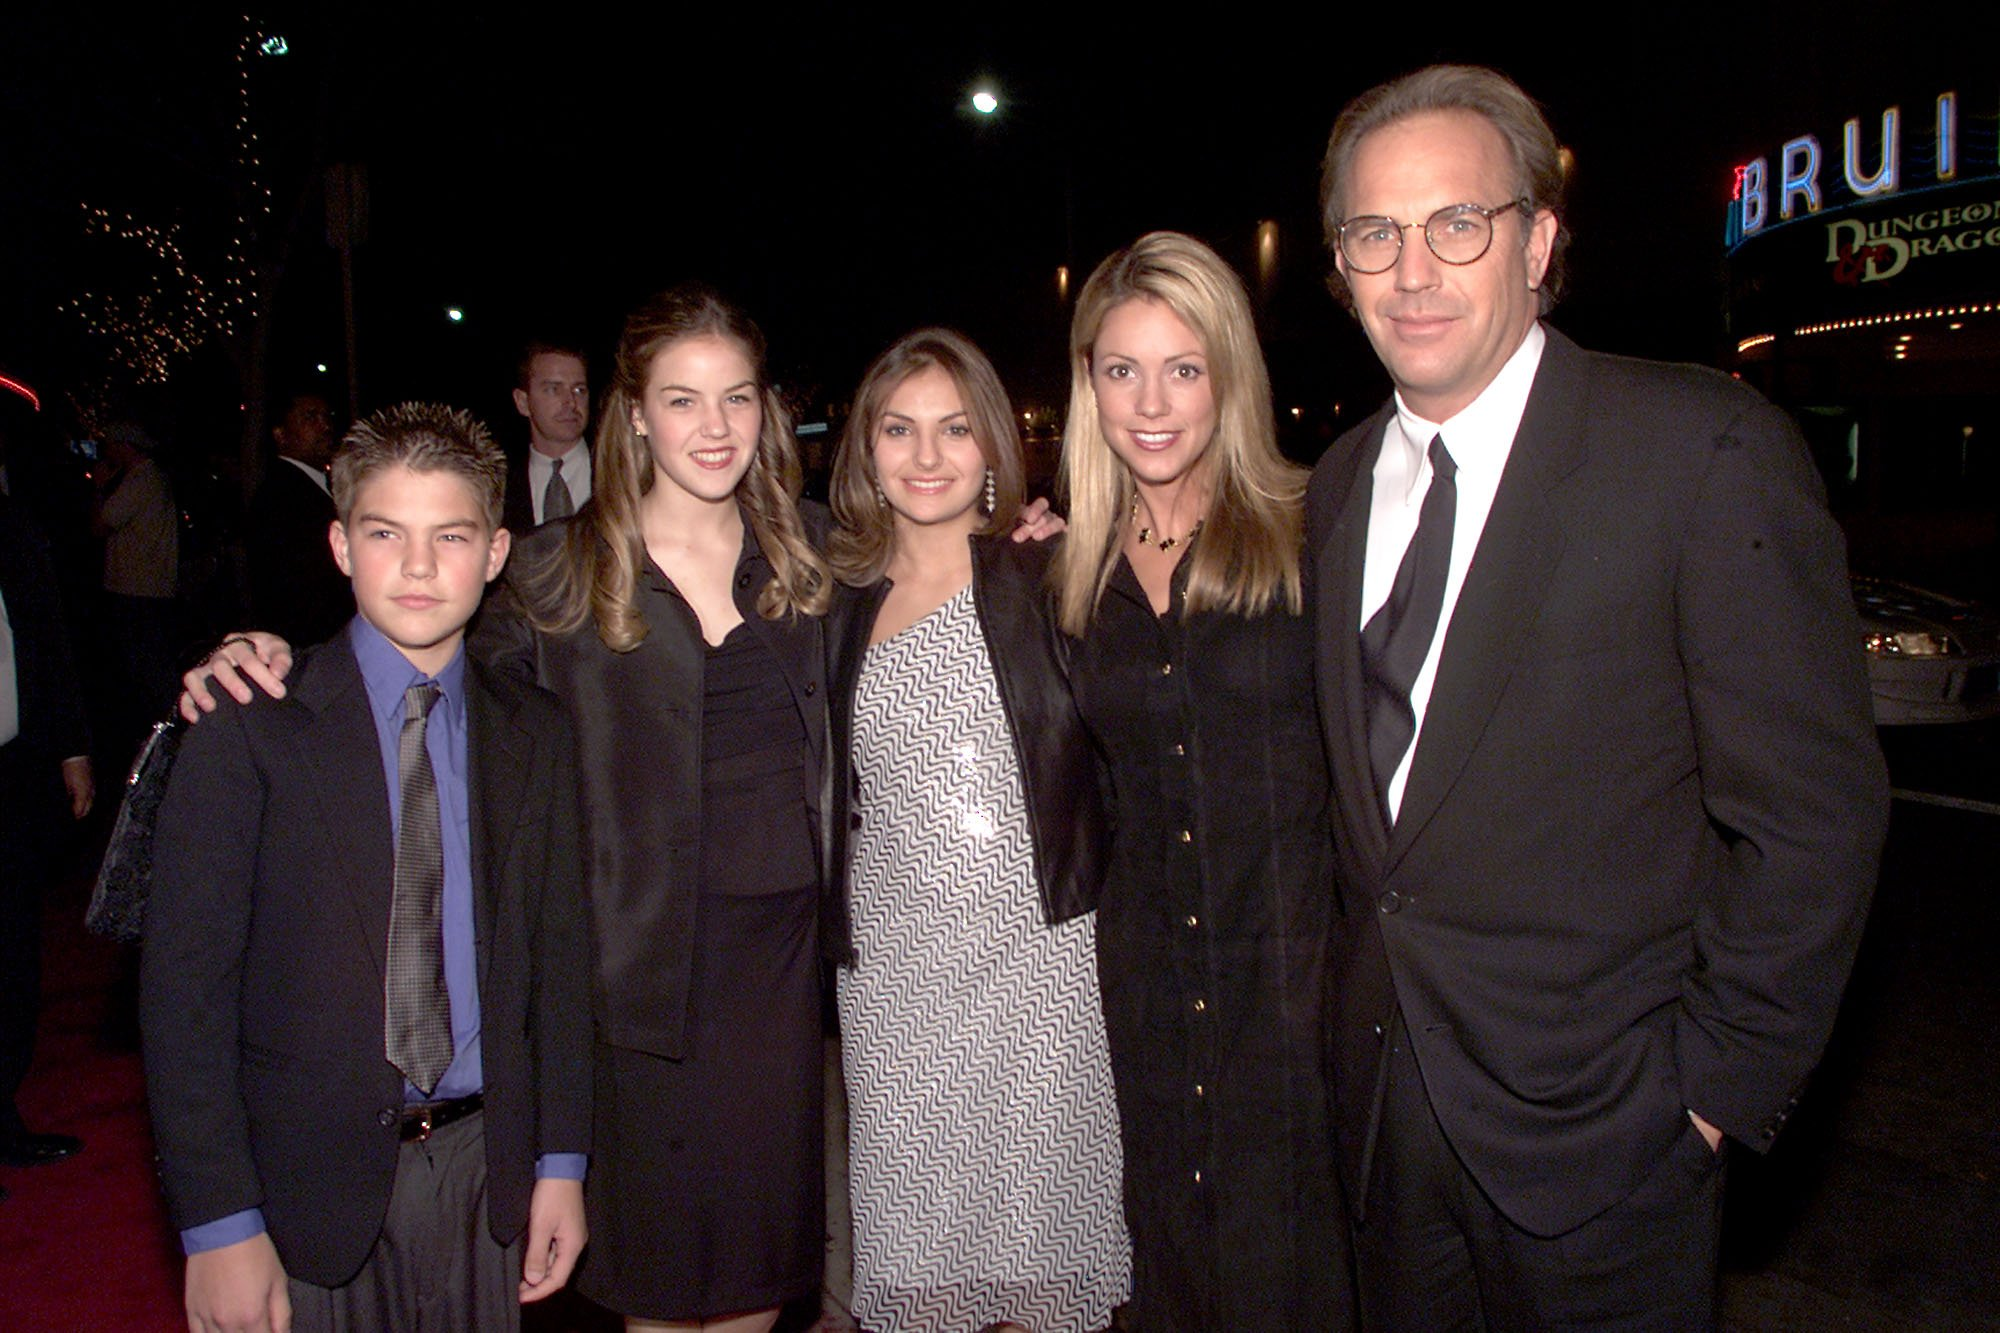 Image Source: Getty Images/Kevin Costner and his family